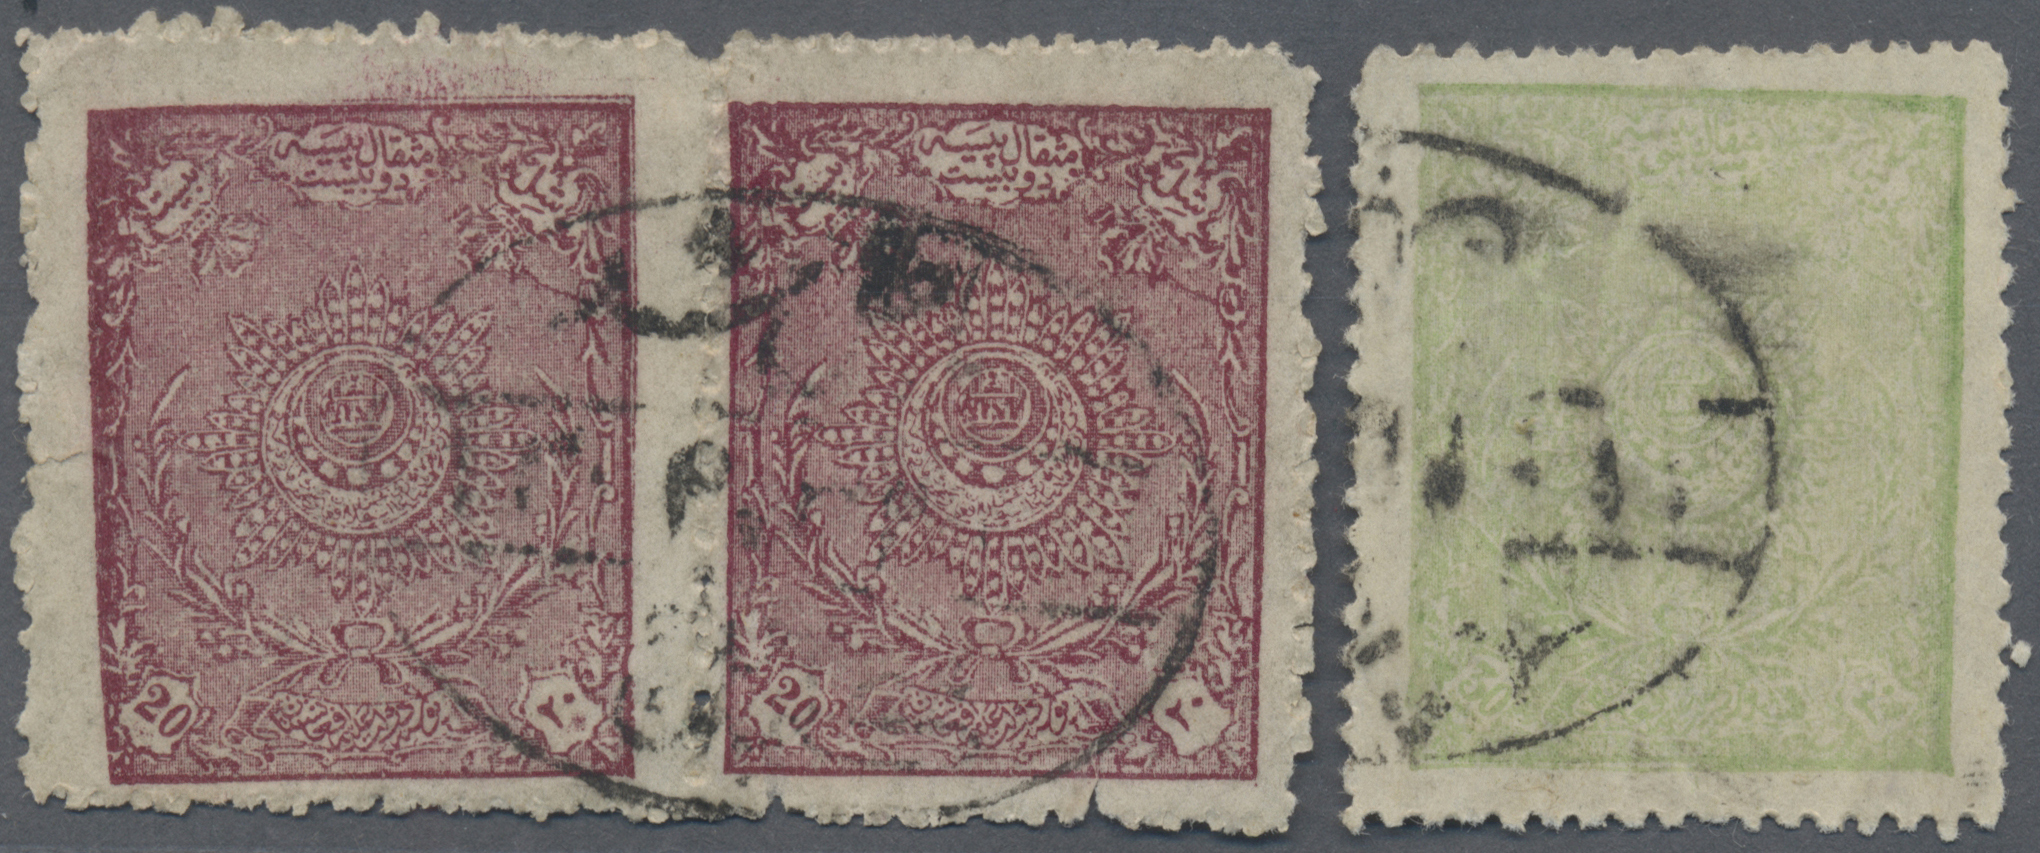 Lot 10002 - Afghanistan  -  Auktionshaus Christoph Gärtner GmbH & Co. KG Sale #47 Single lots: Asia, Thematics, Overseas, Europe